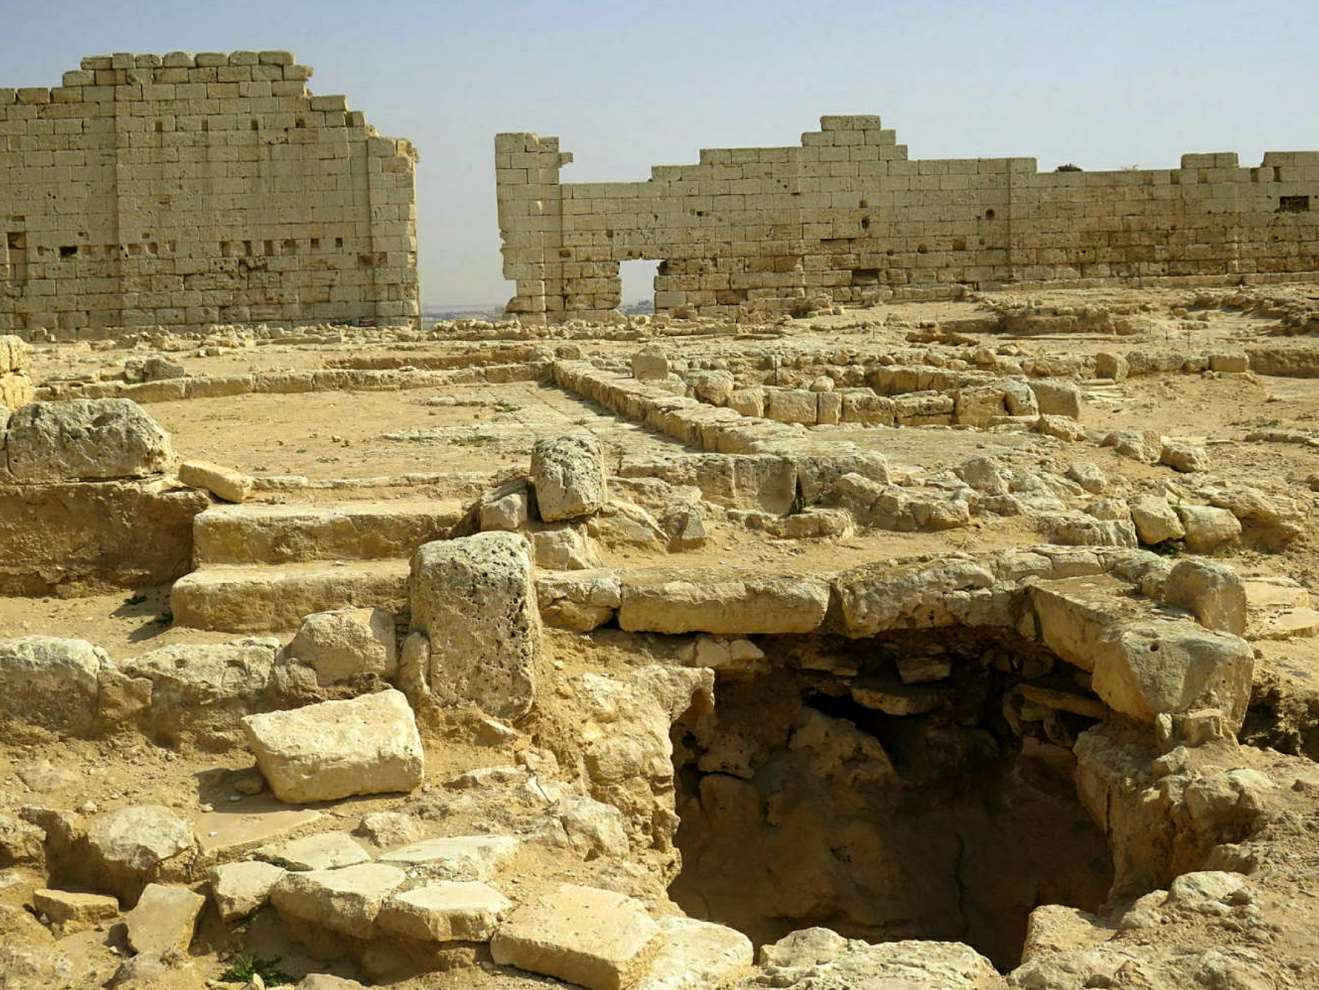 The remains of Taposiris Magna, in Alexandria